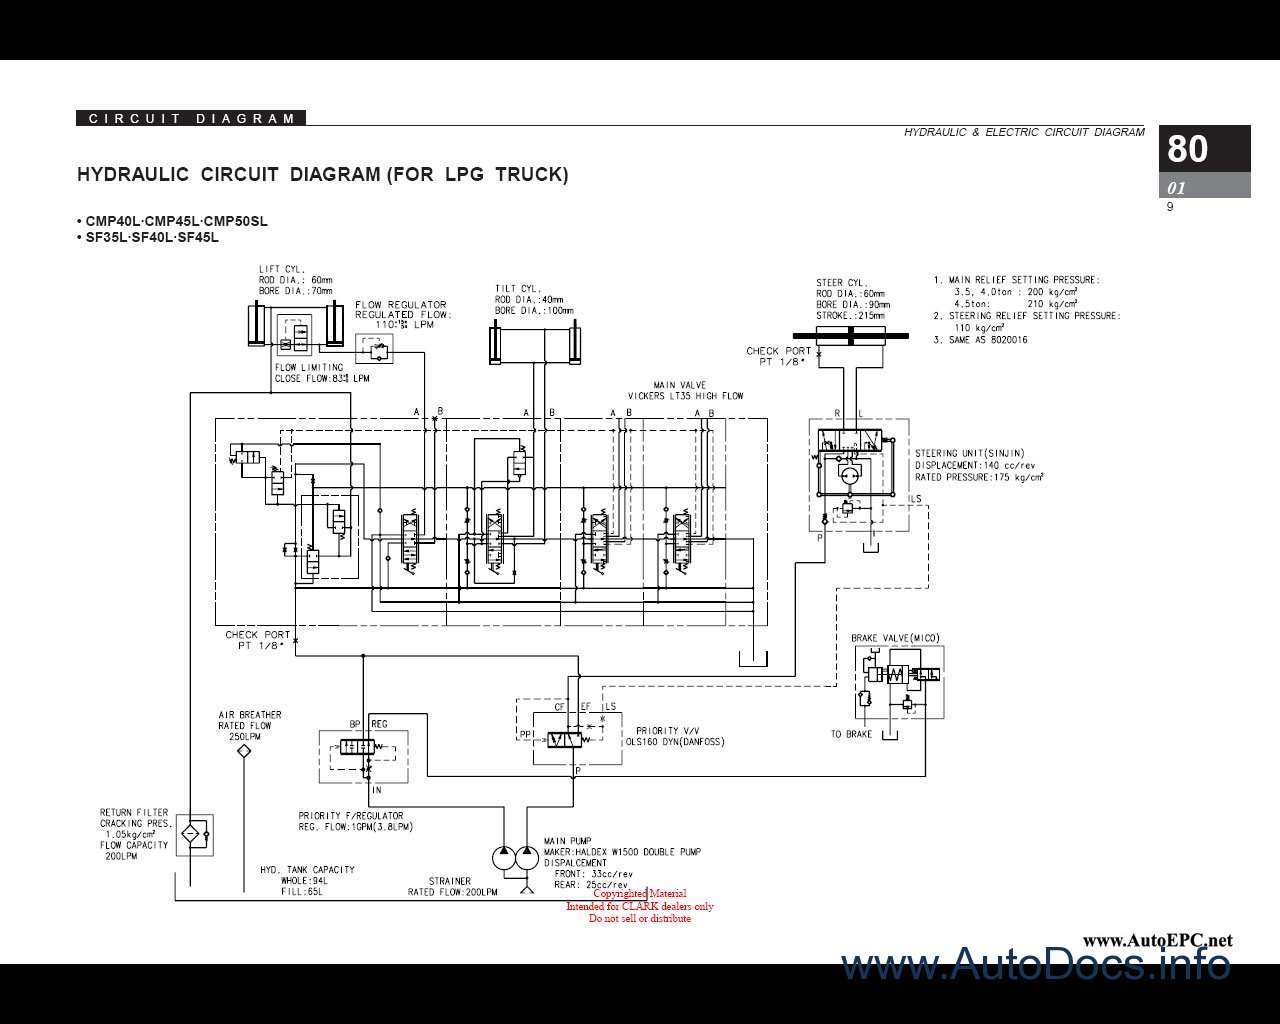 electrical wiring diagrams and symbols human cell diagram to label printable clark forklift truck parts pro 2010 catalog repair manual order & download